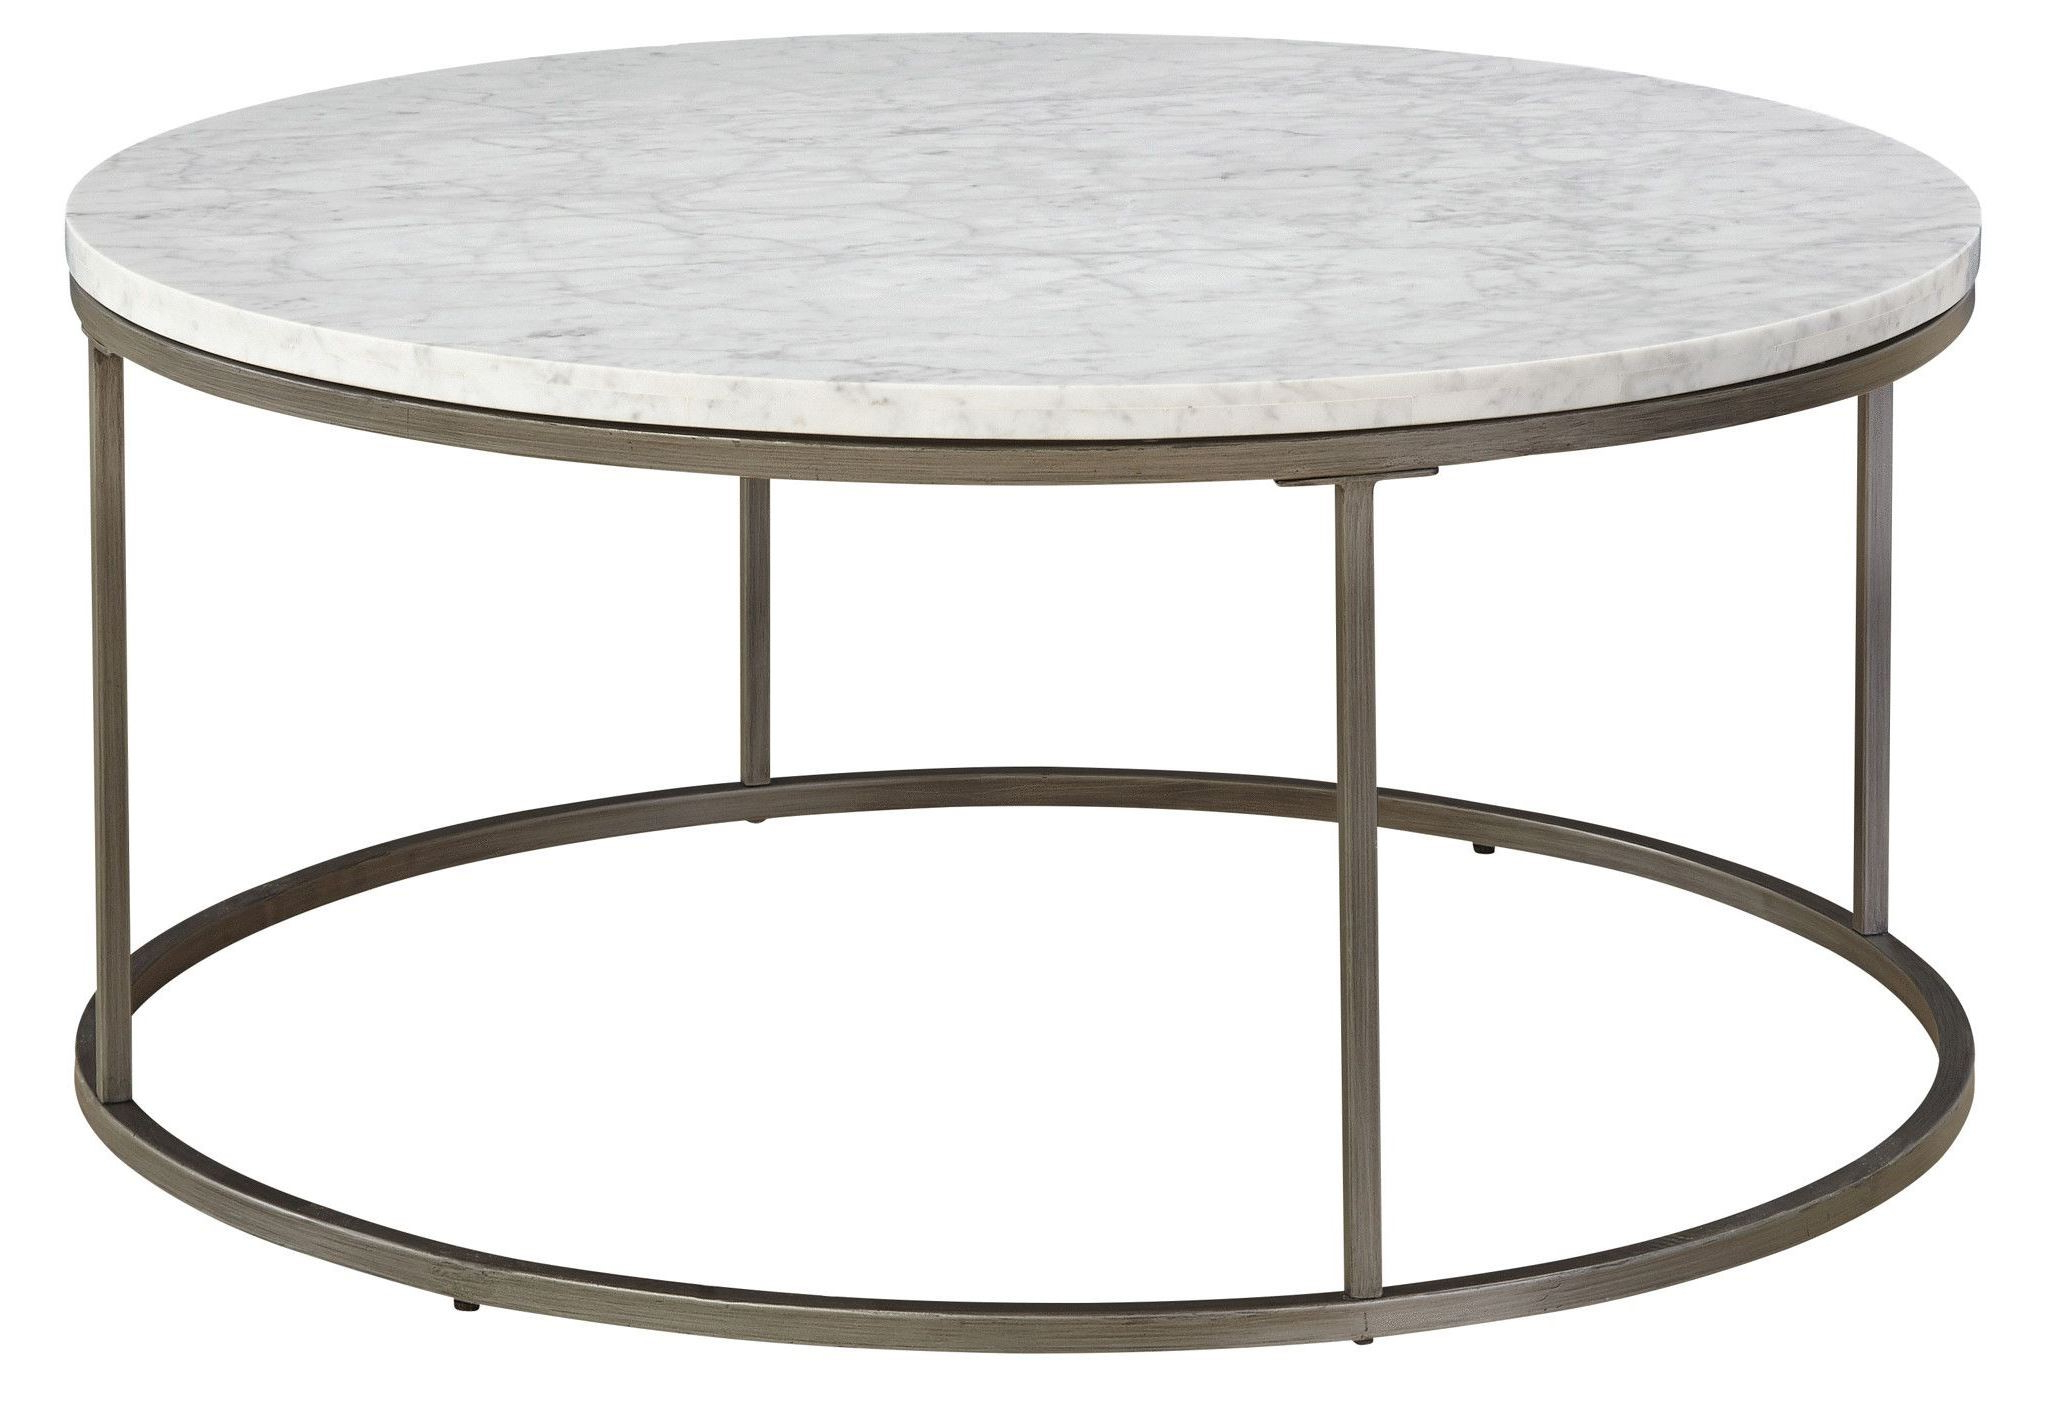 Round Marble Table Top Round Marble Table Tops For Sale In Most Current Smart Round Marble Top Coffee Tables (View 11 of 20)